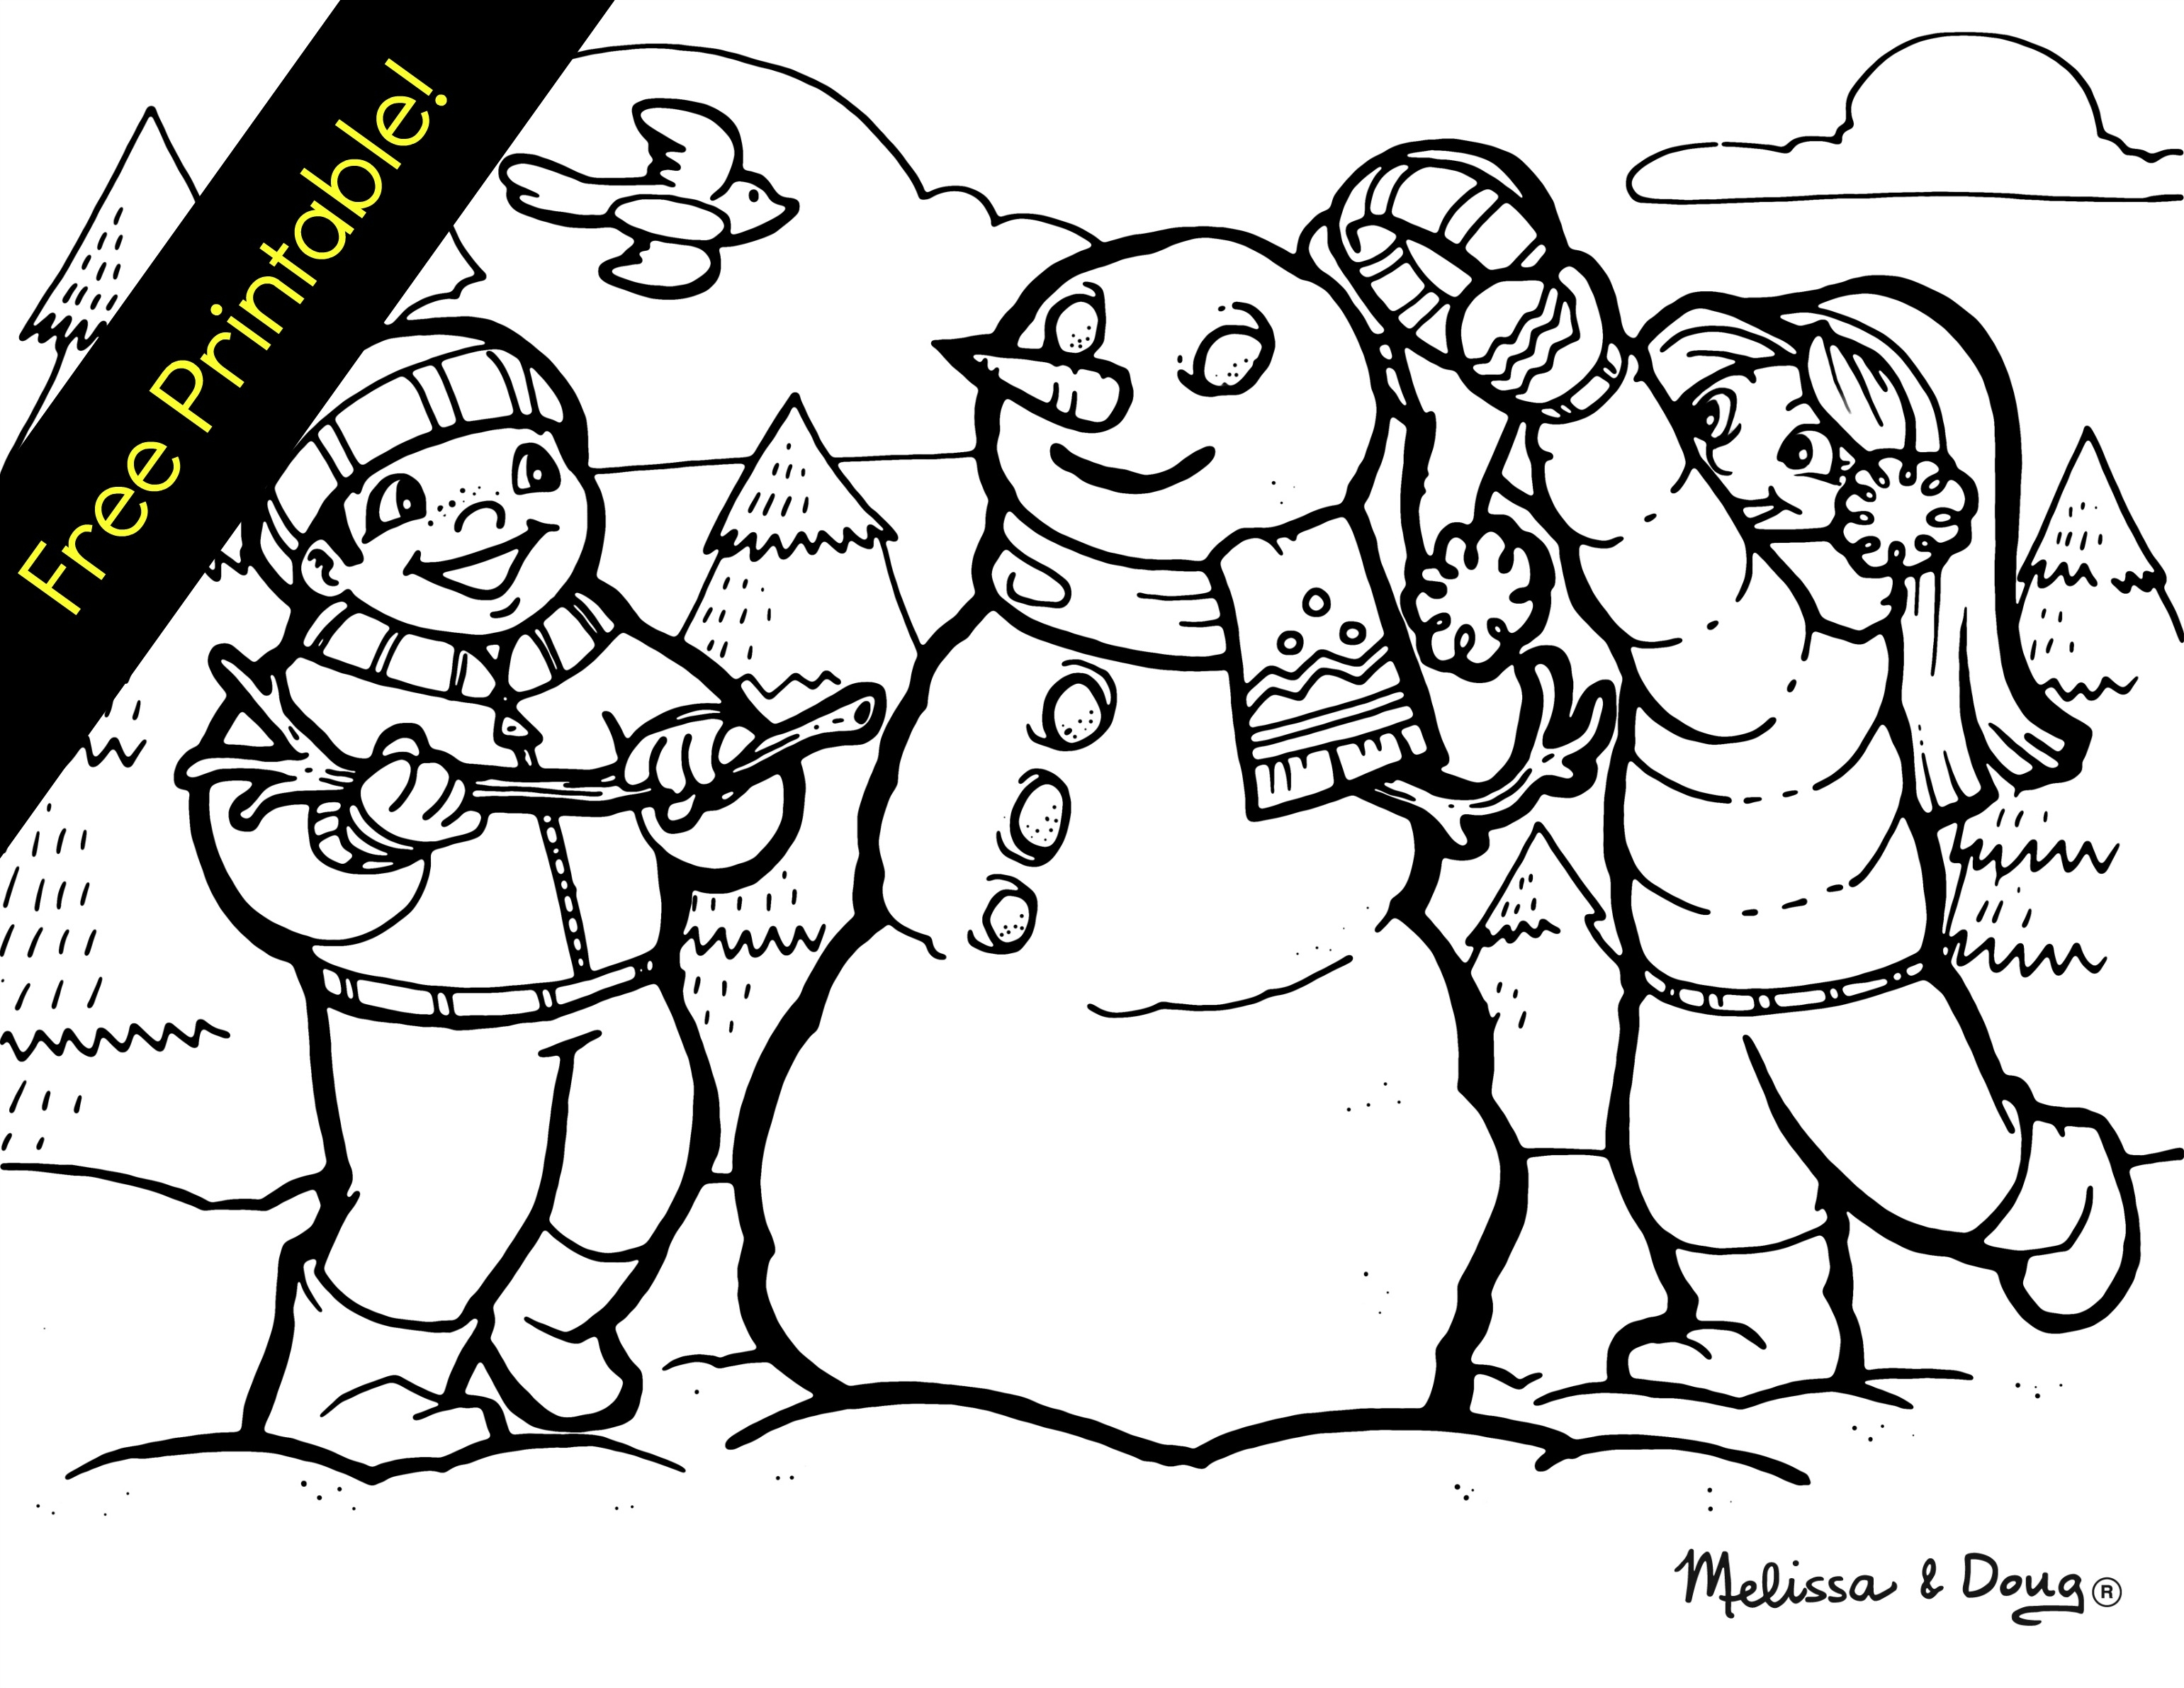 photograph about Printable Winter Colouring Pages named Printable Wintertime Coloring Internet pages For Small children at